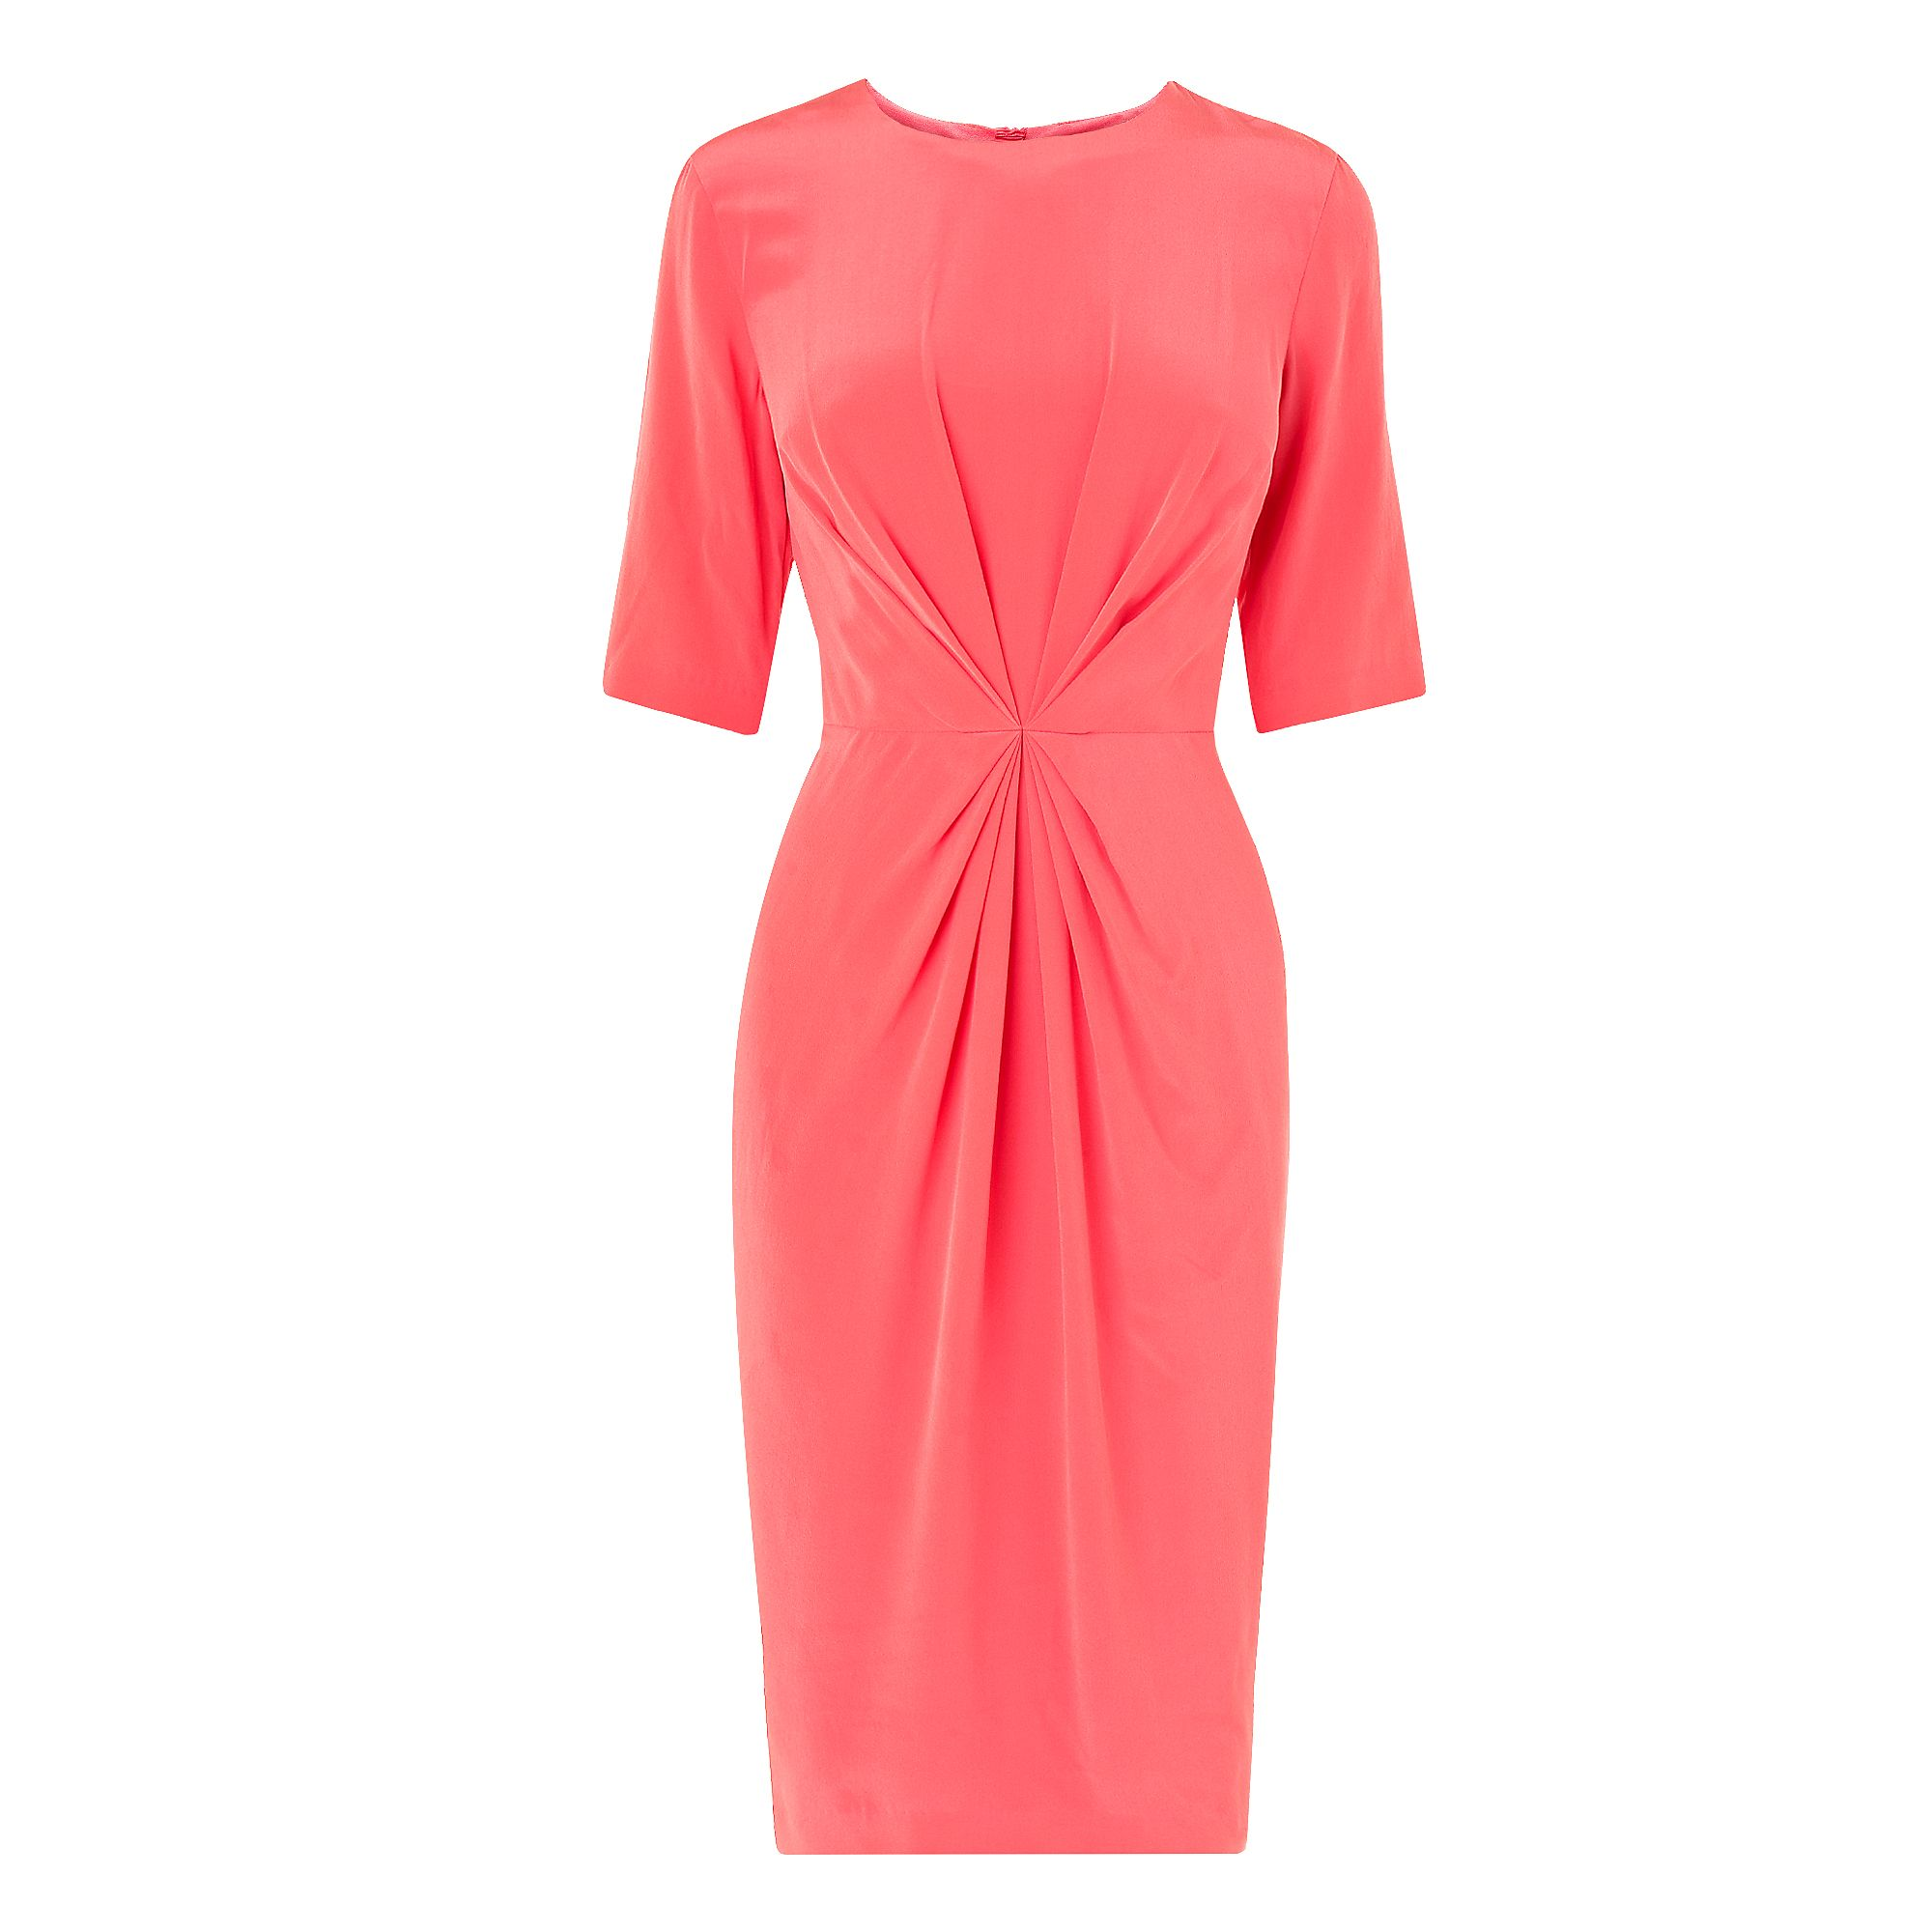 L.K. Bennett Lisburn pleat detail dress Coral - House of Fraser